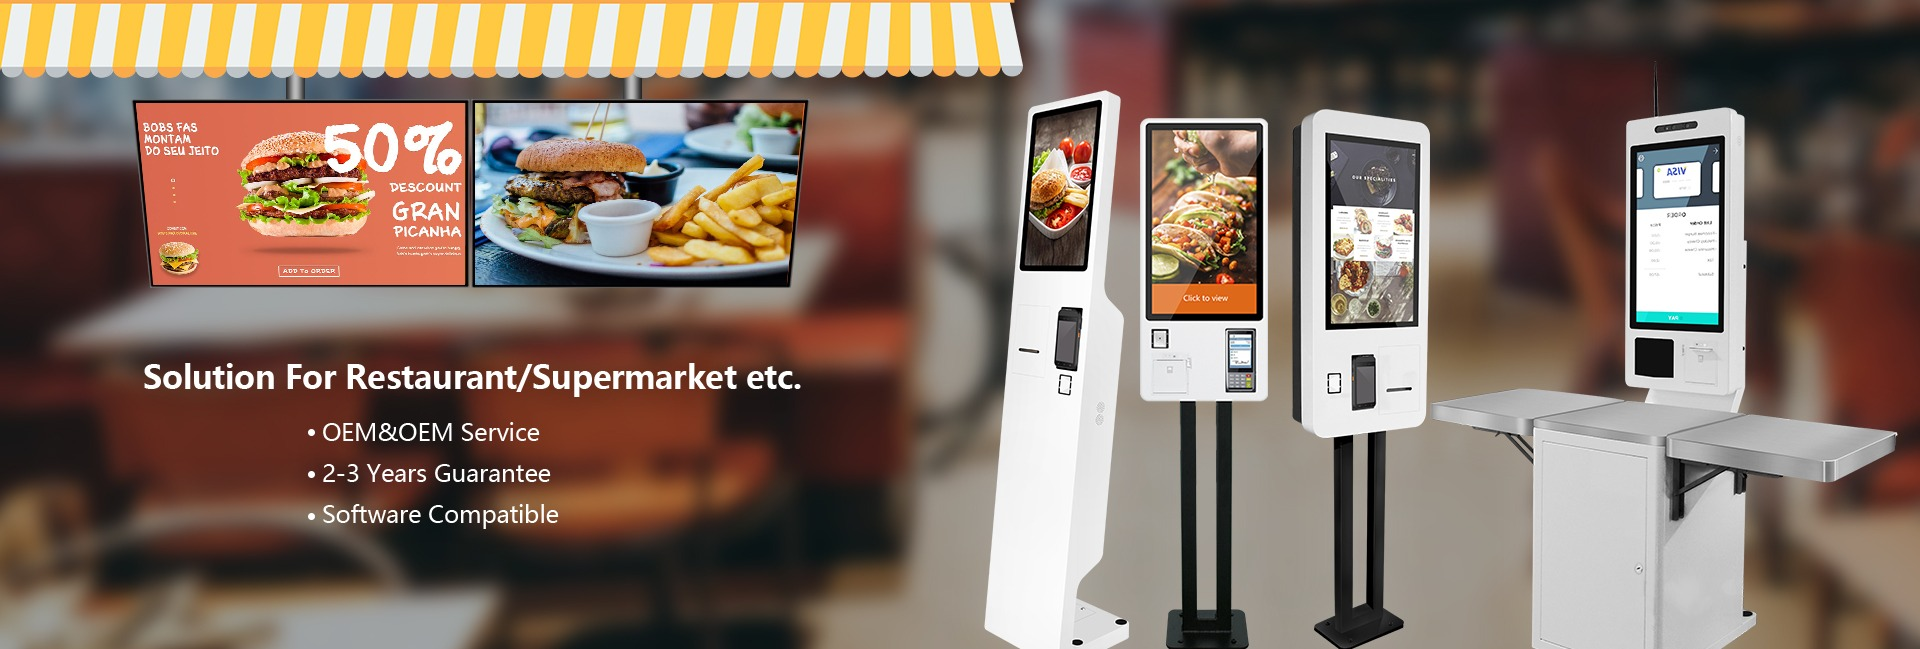 pos uk Digital Screens and self order kiosk